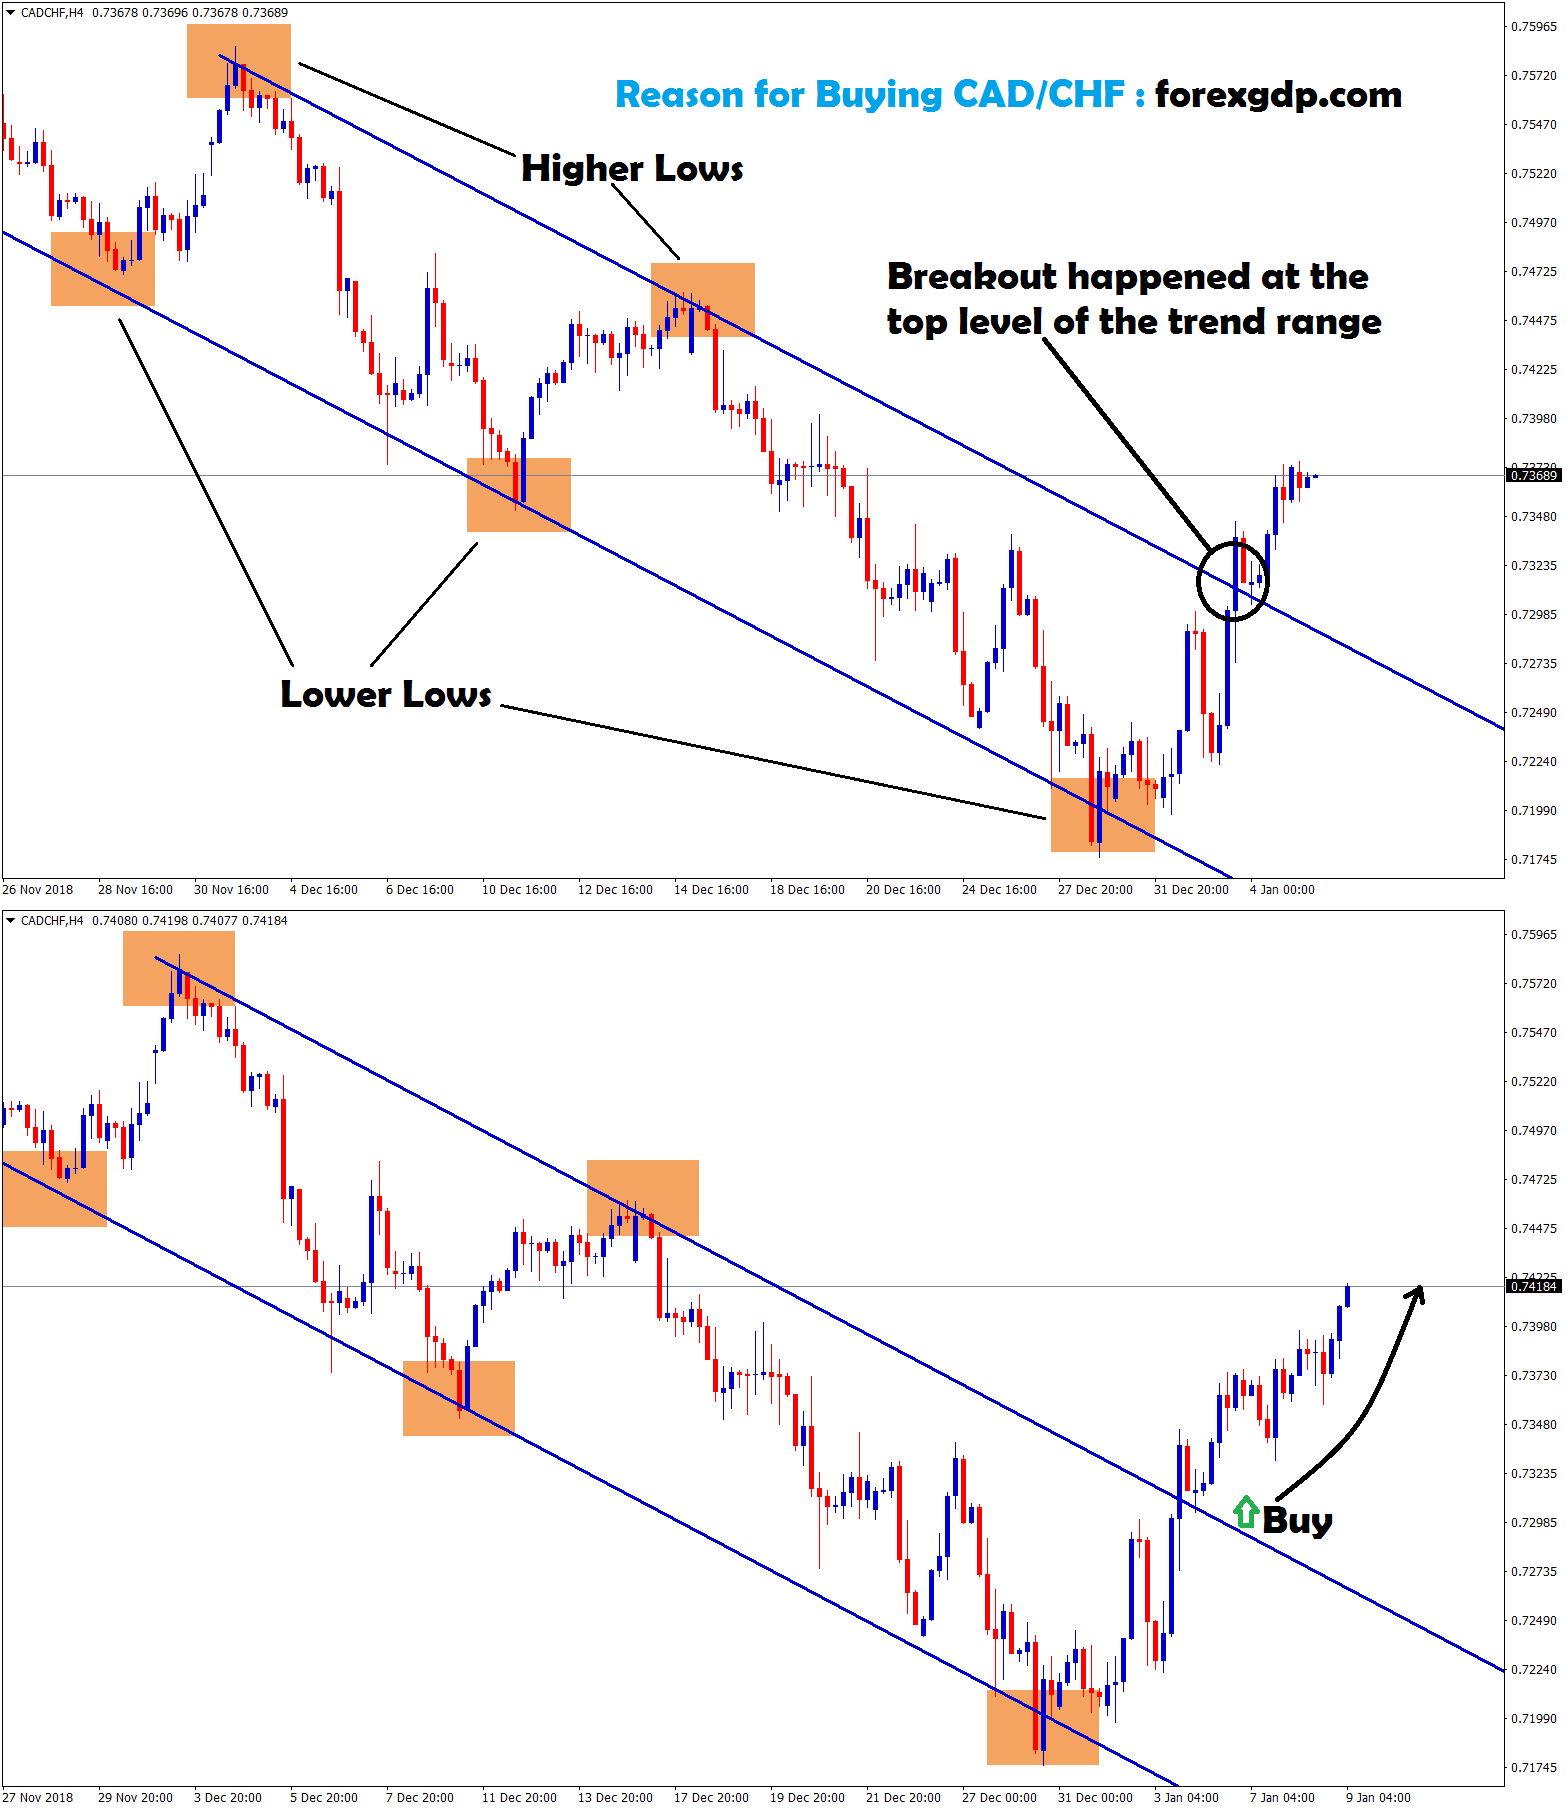 buy signal given in cad chf after broken the trend